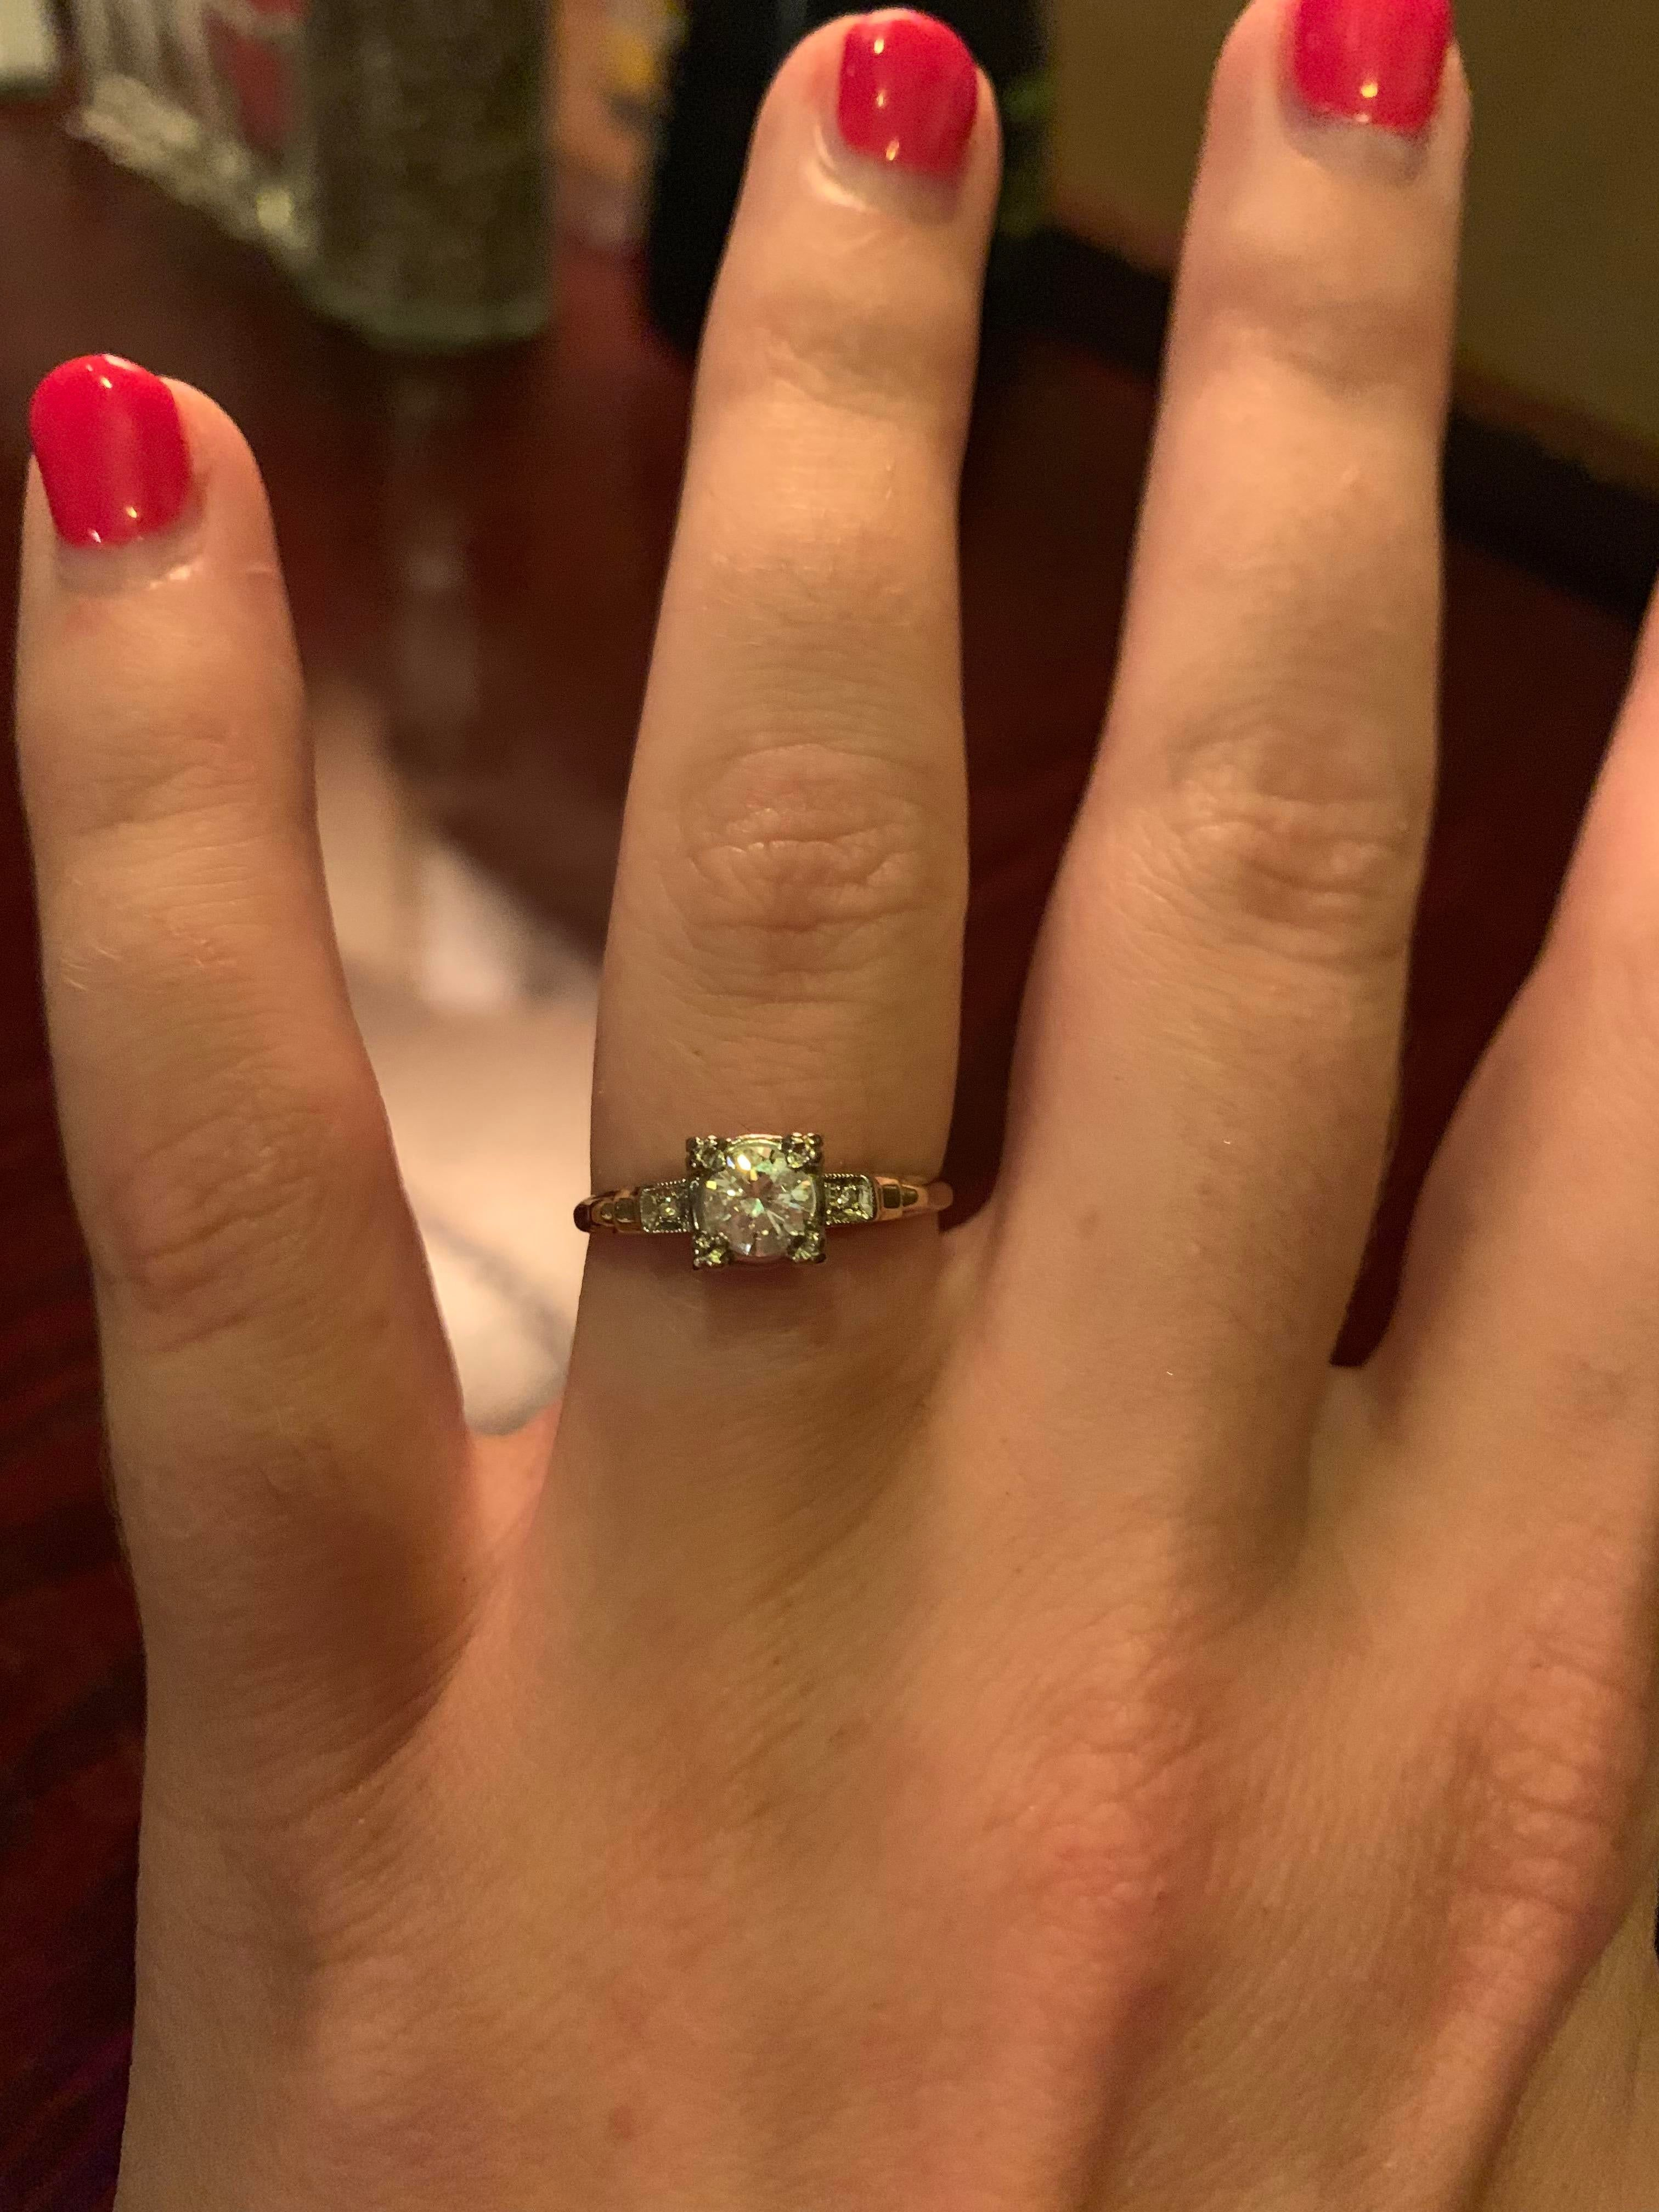 He proposed the day before my birthday! This is his great